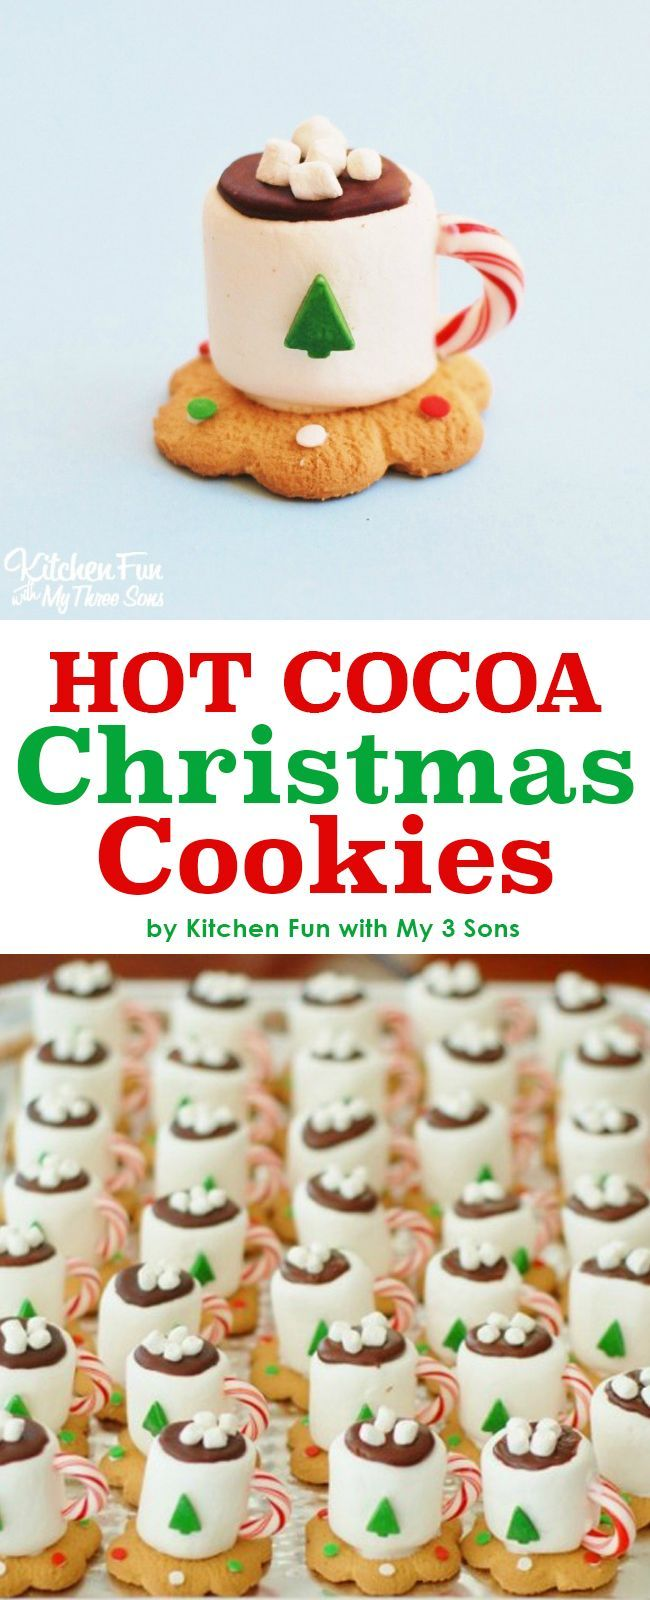 Christmas Treats - Hot Cocoa Marshmallow Cookie Cups | Crafting ...